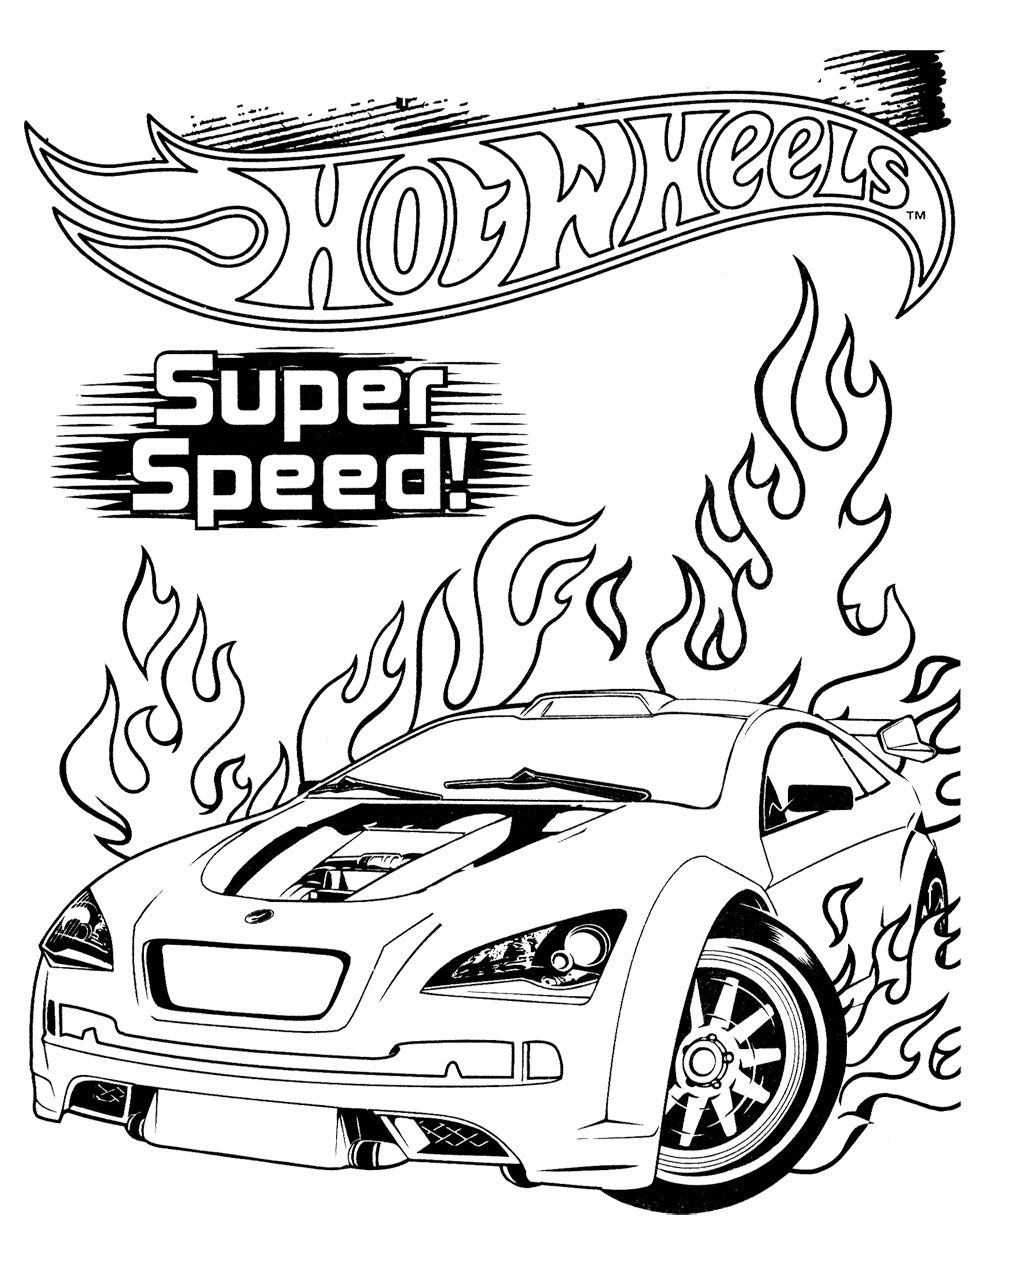 Hot Wheels Super Speed Coloring Page For Kids Baski Resim Baski